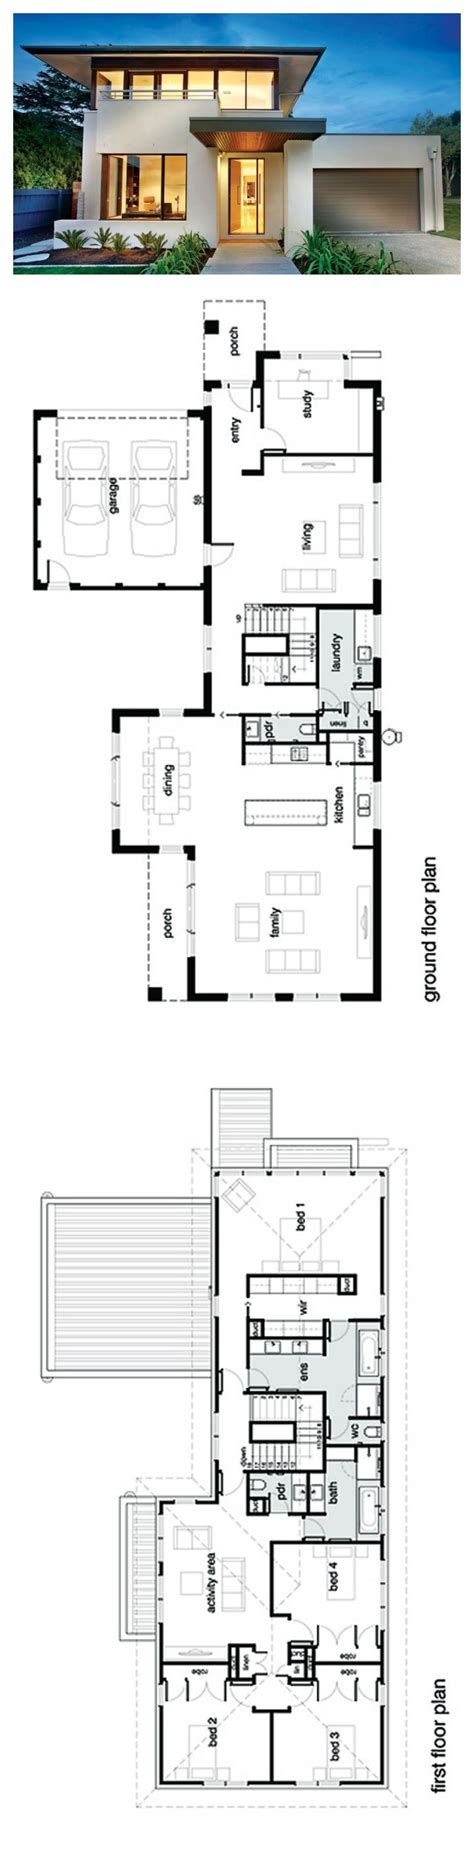 modernist house plans the 25 best ideas about modern house plans on pinterest